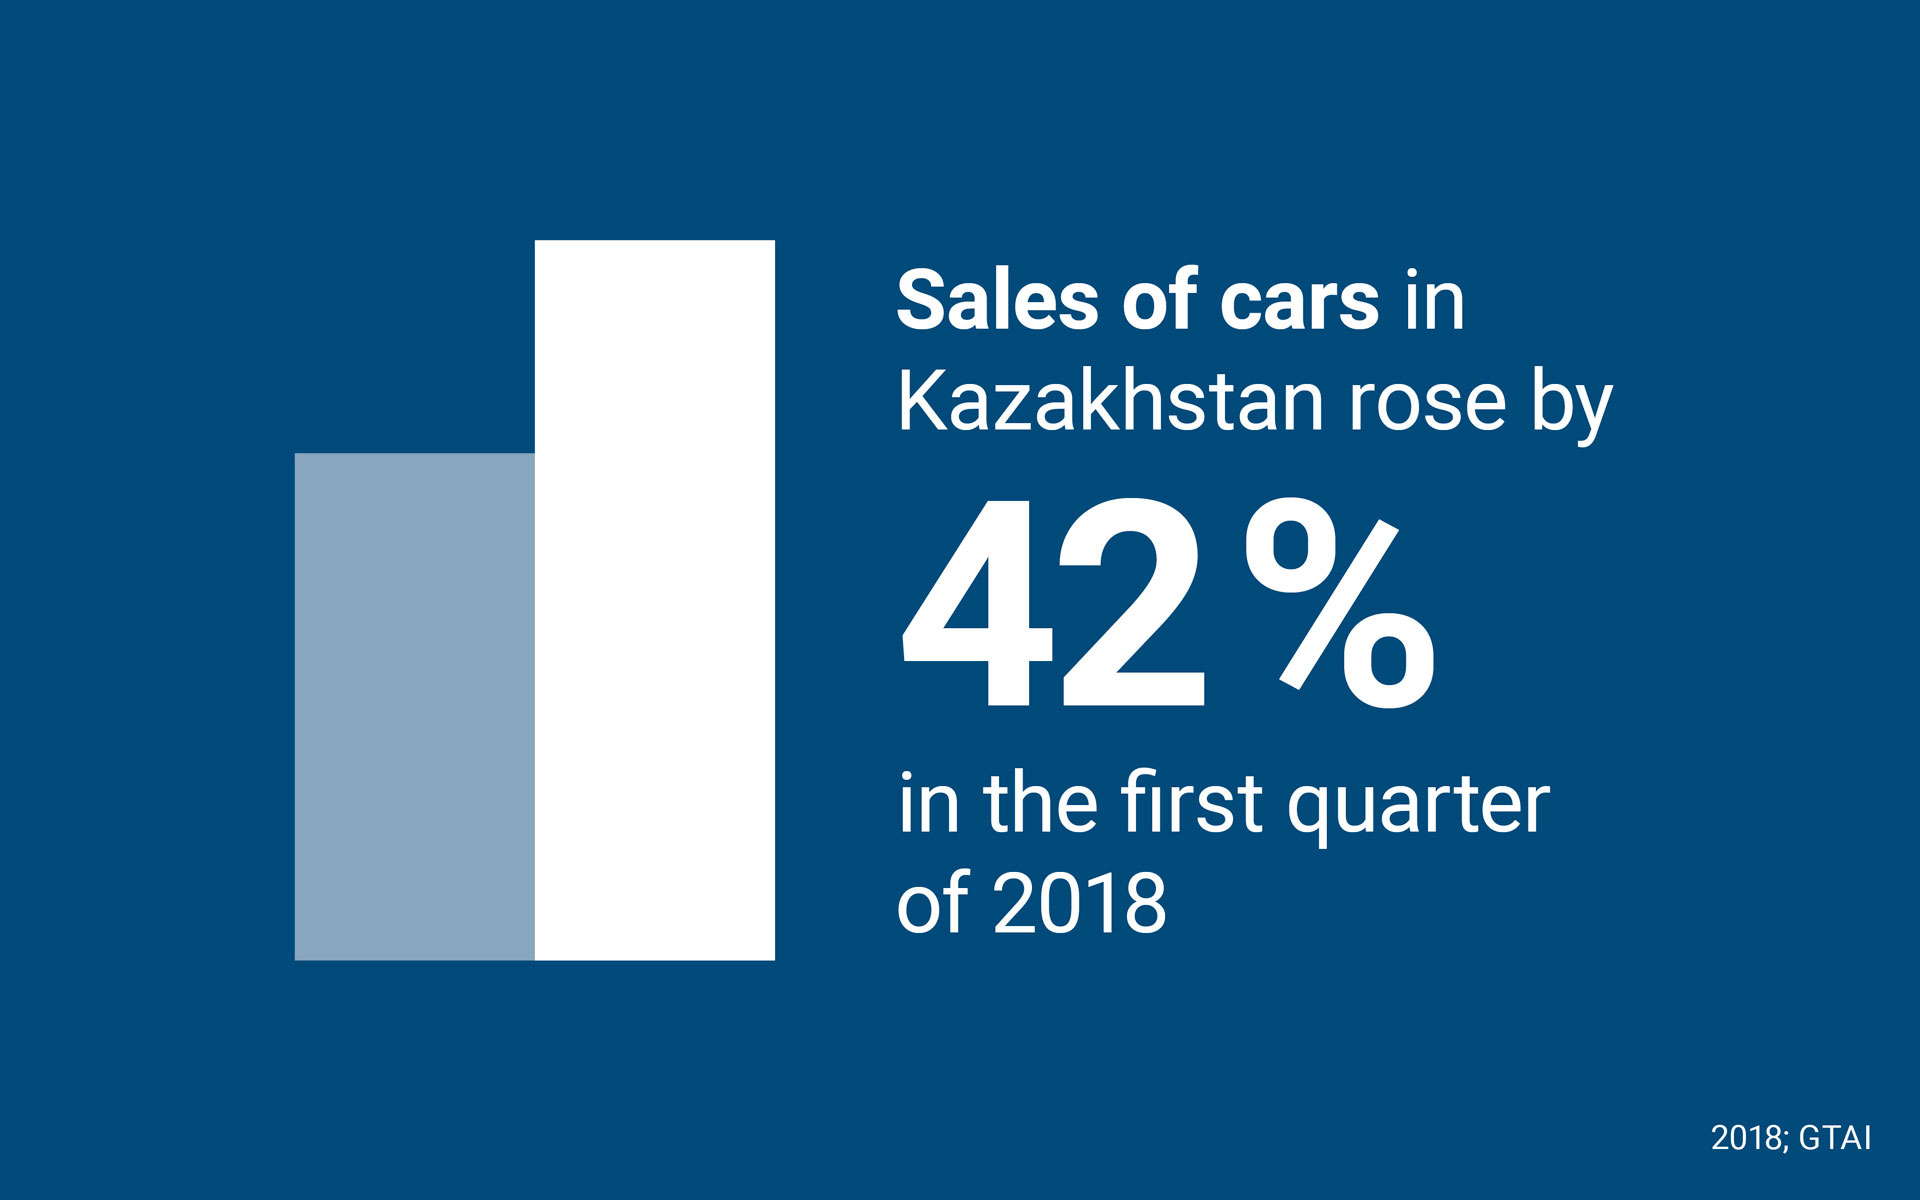 Sales of cars in Kazakhstan rose by 42% in the first quarter of 2018